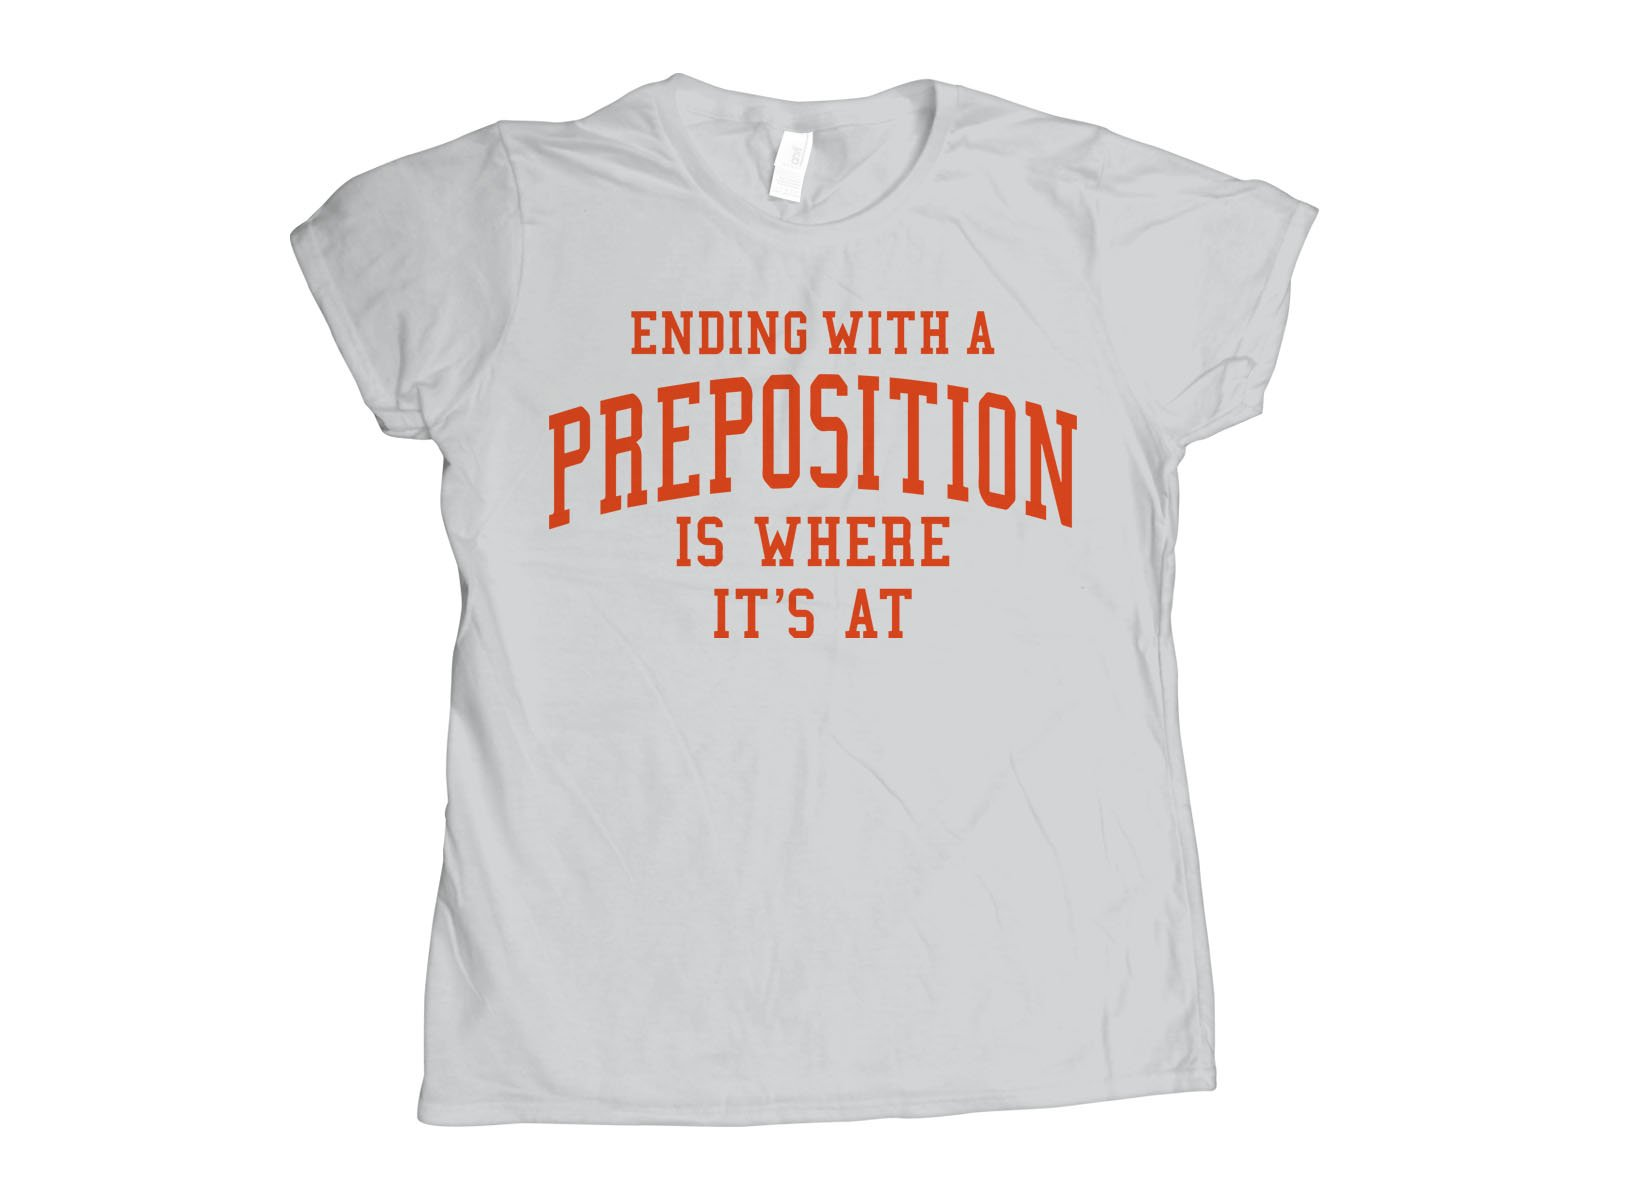 Ending With A Preposition Is Where It's At on Womens T-Shirt